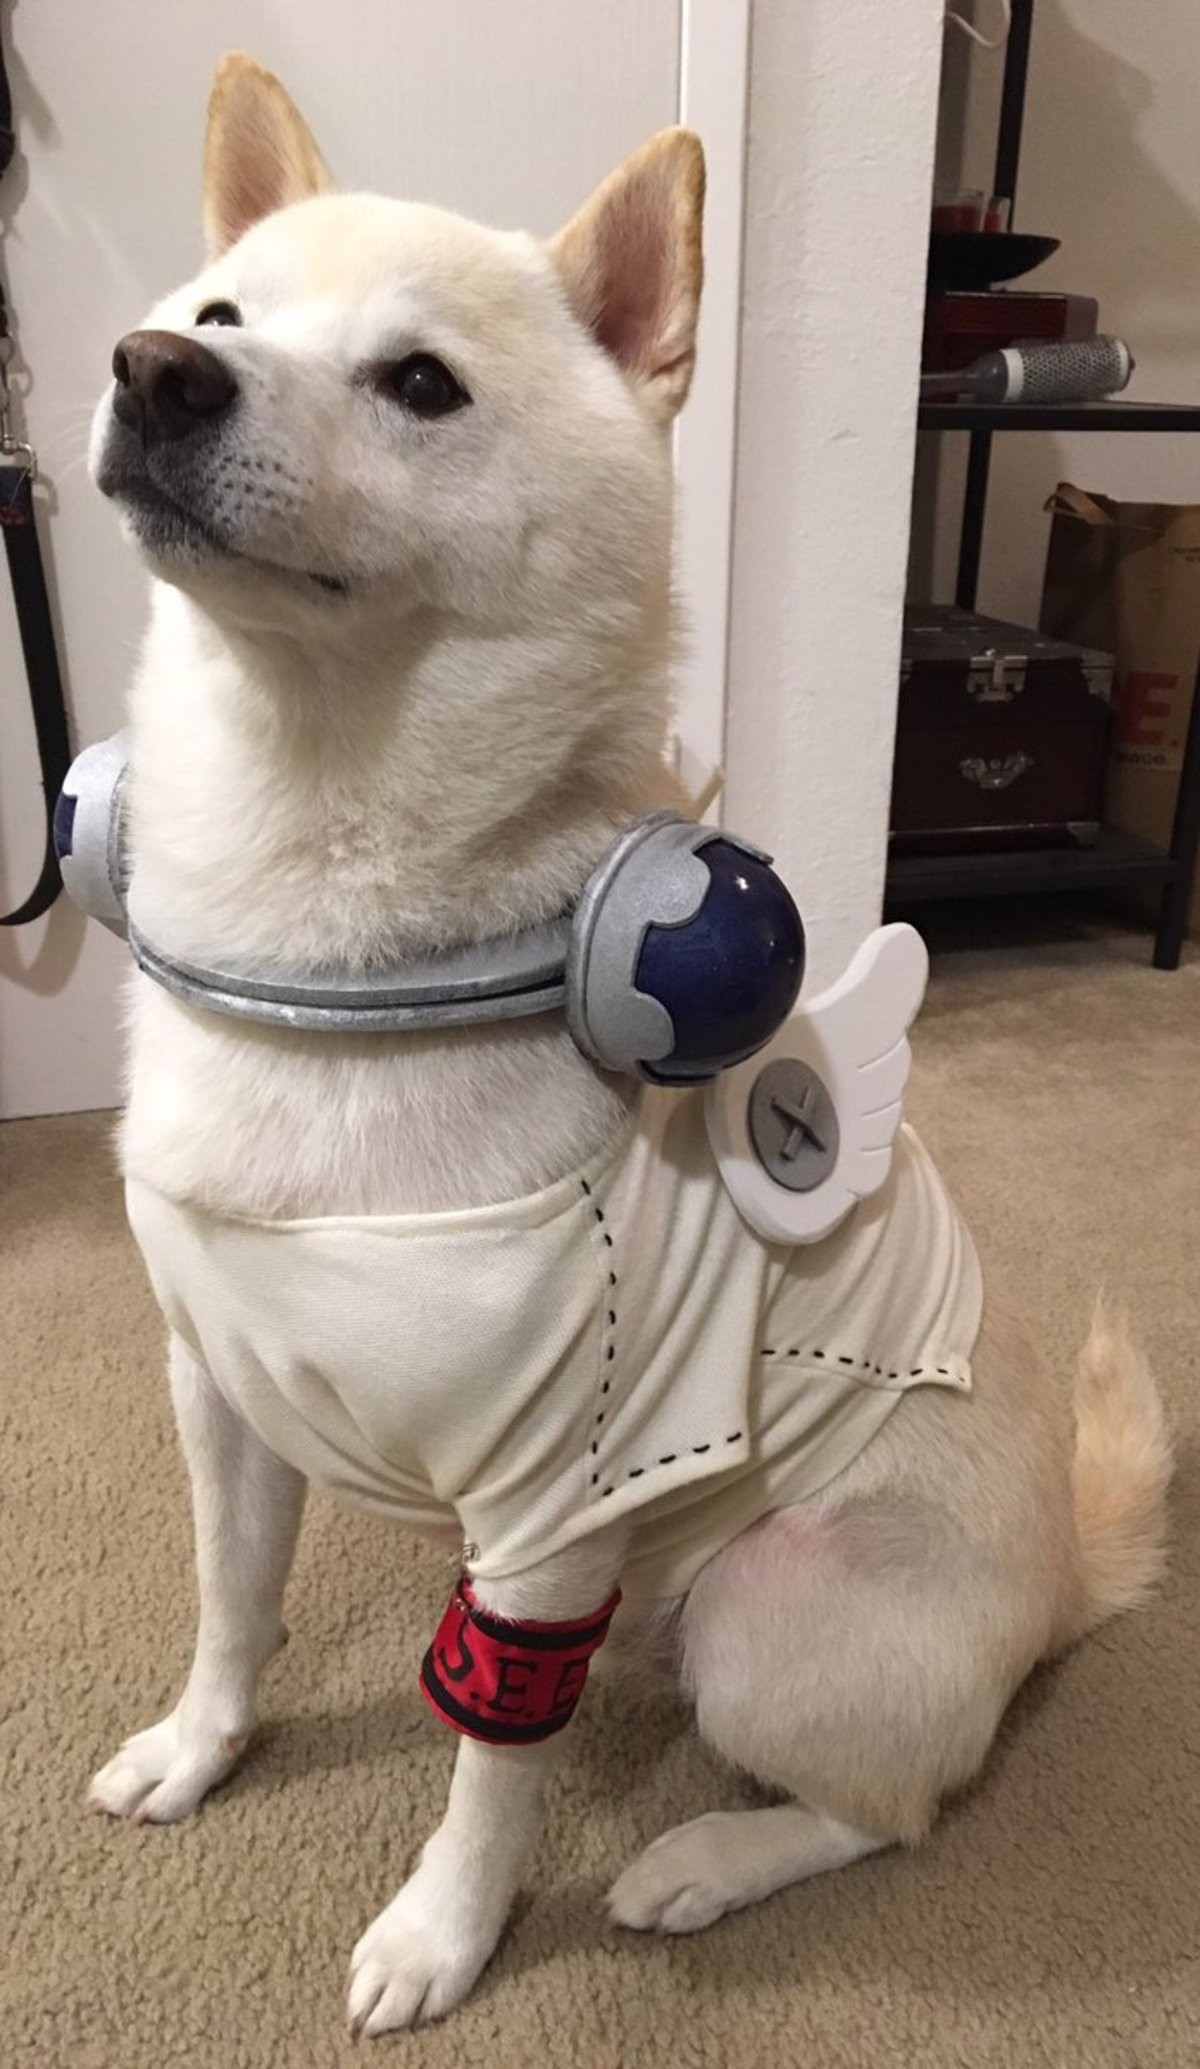 Cosplay Doggo. Source: https://www.twitter.com/HezaChandotcom/status/791082031035785216 Dog is cosplaying Koromaru from Persona 3 join list: Harmlesslycute (383